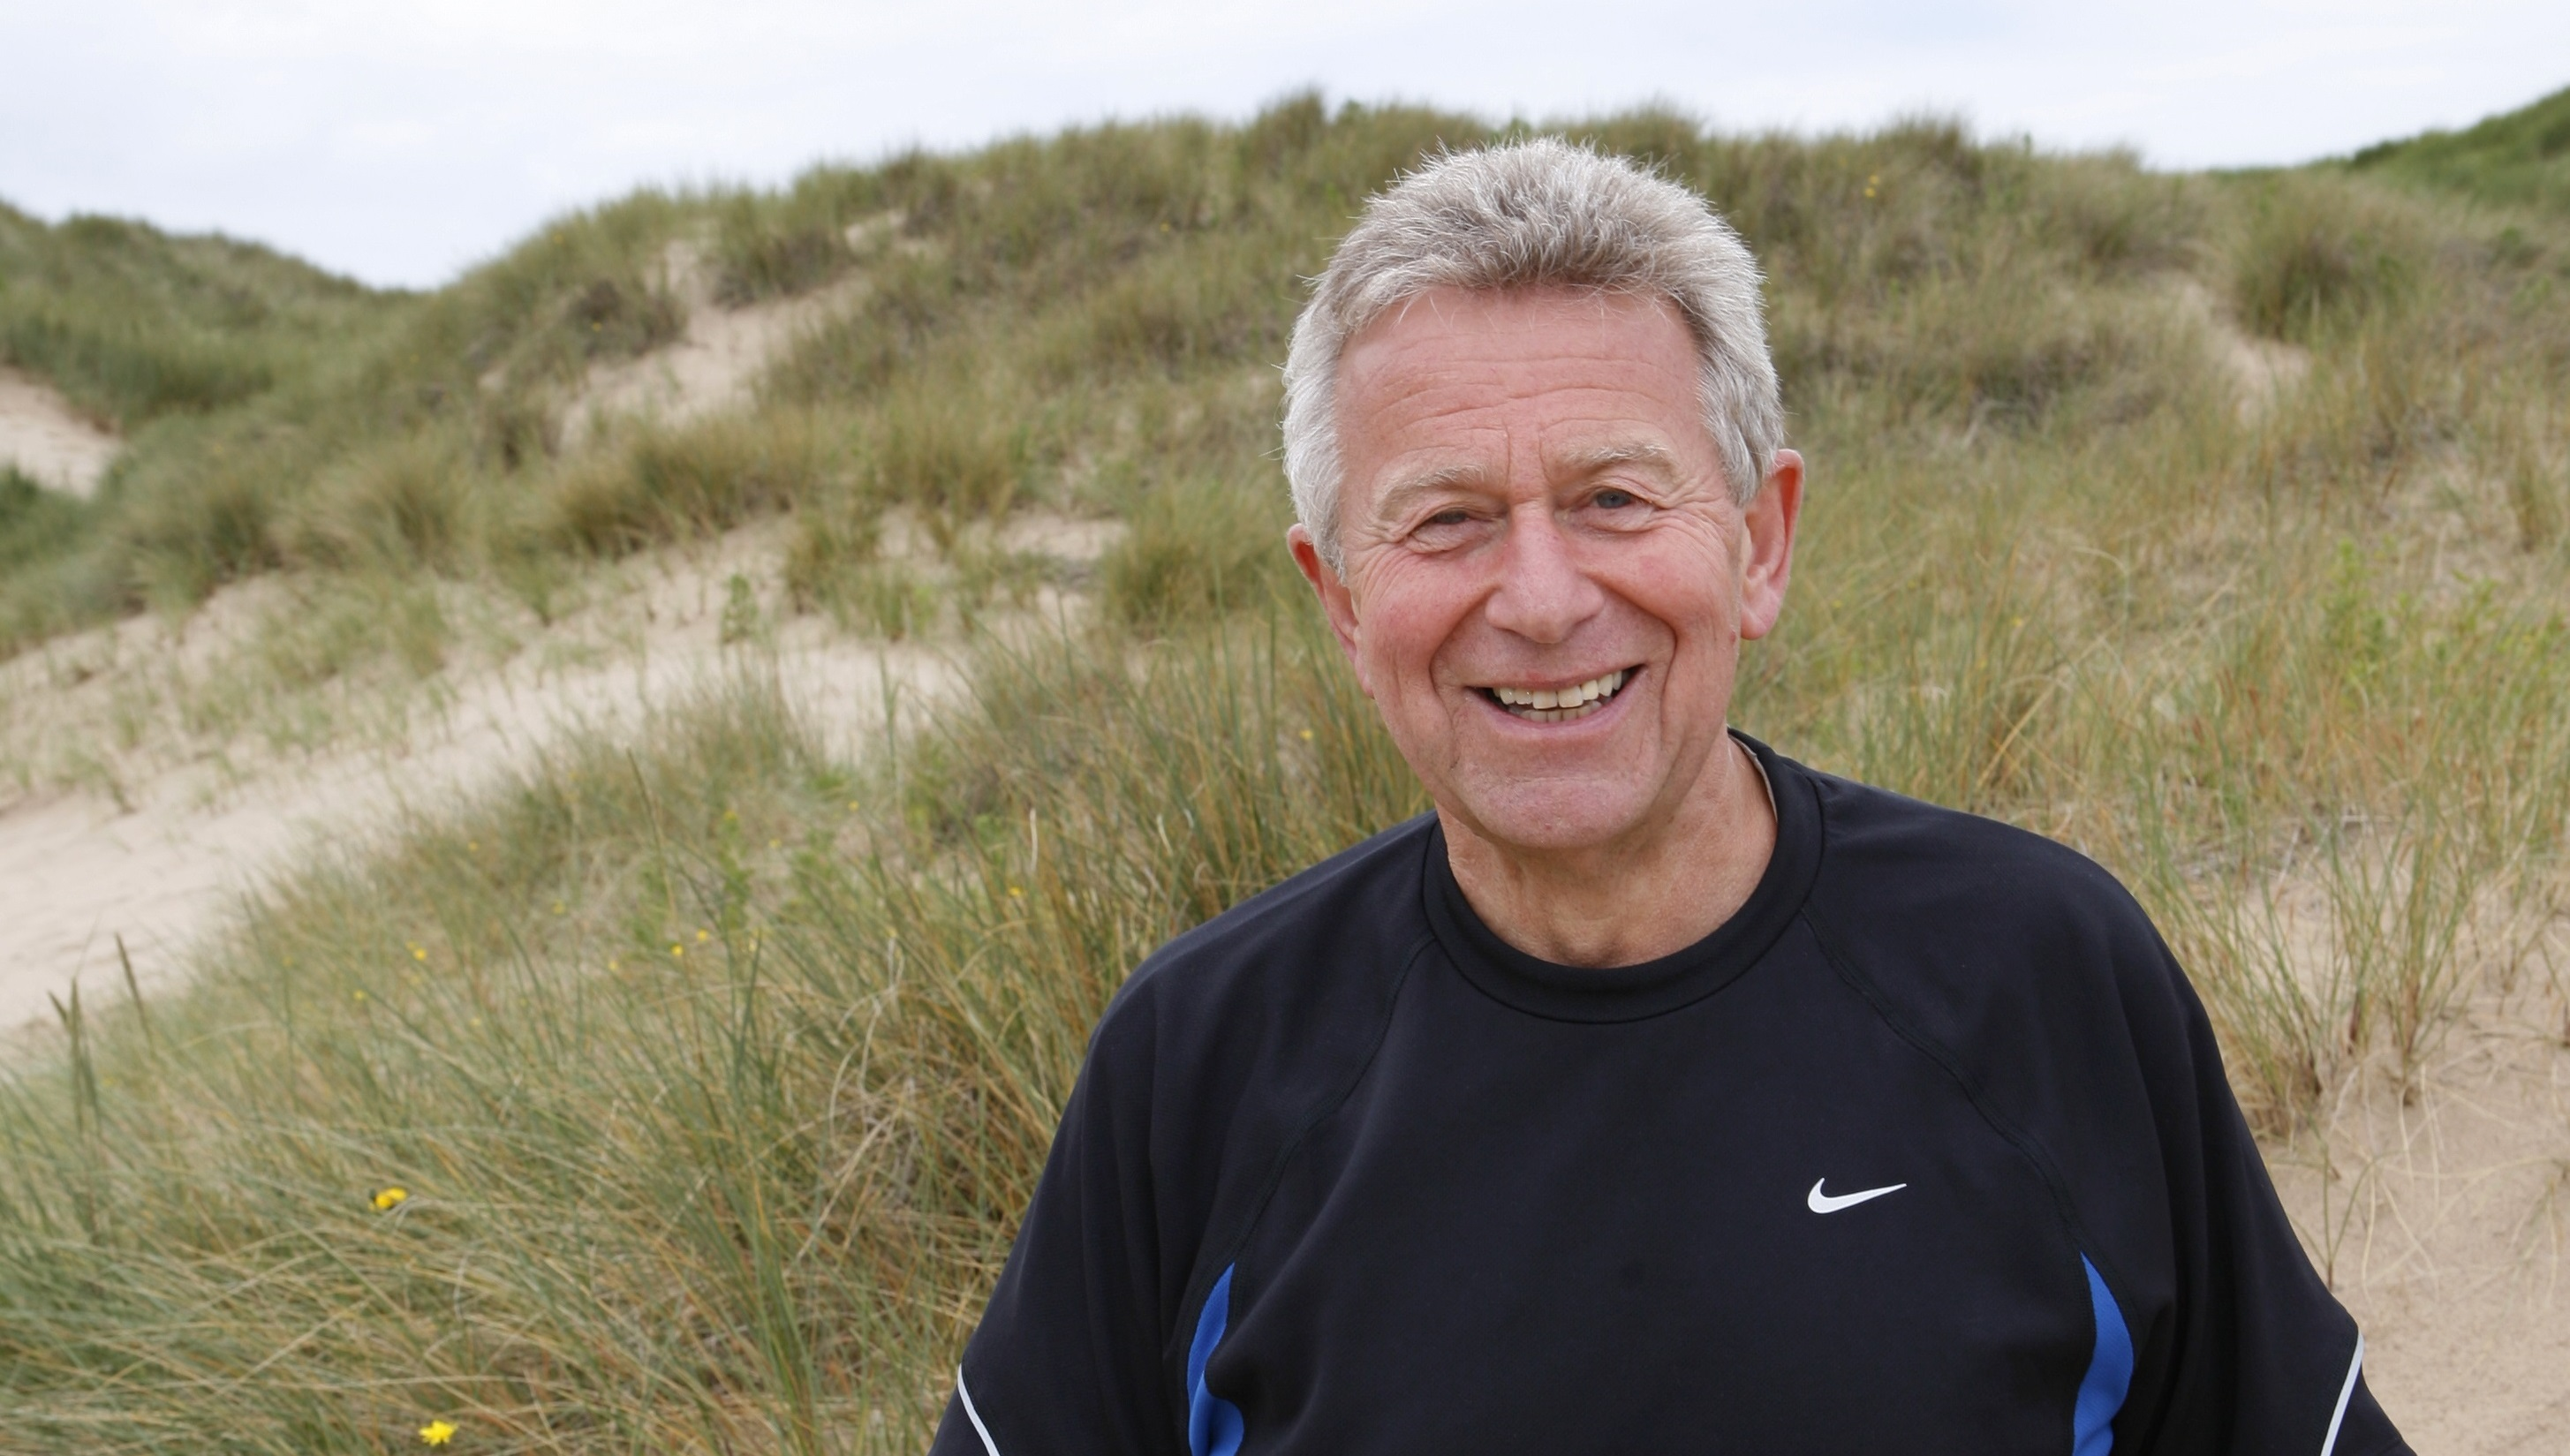 Bowel cancer patient Clive